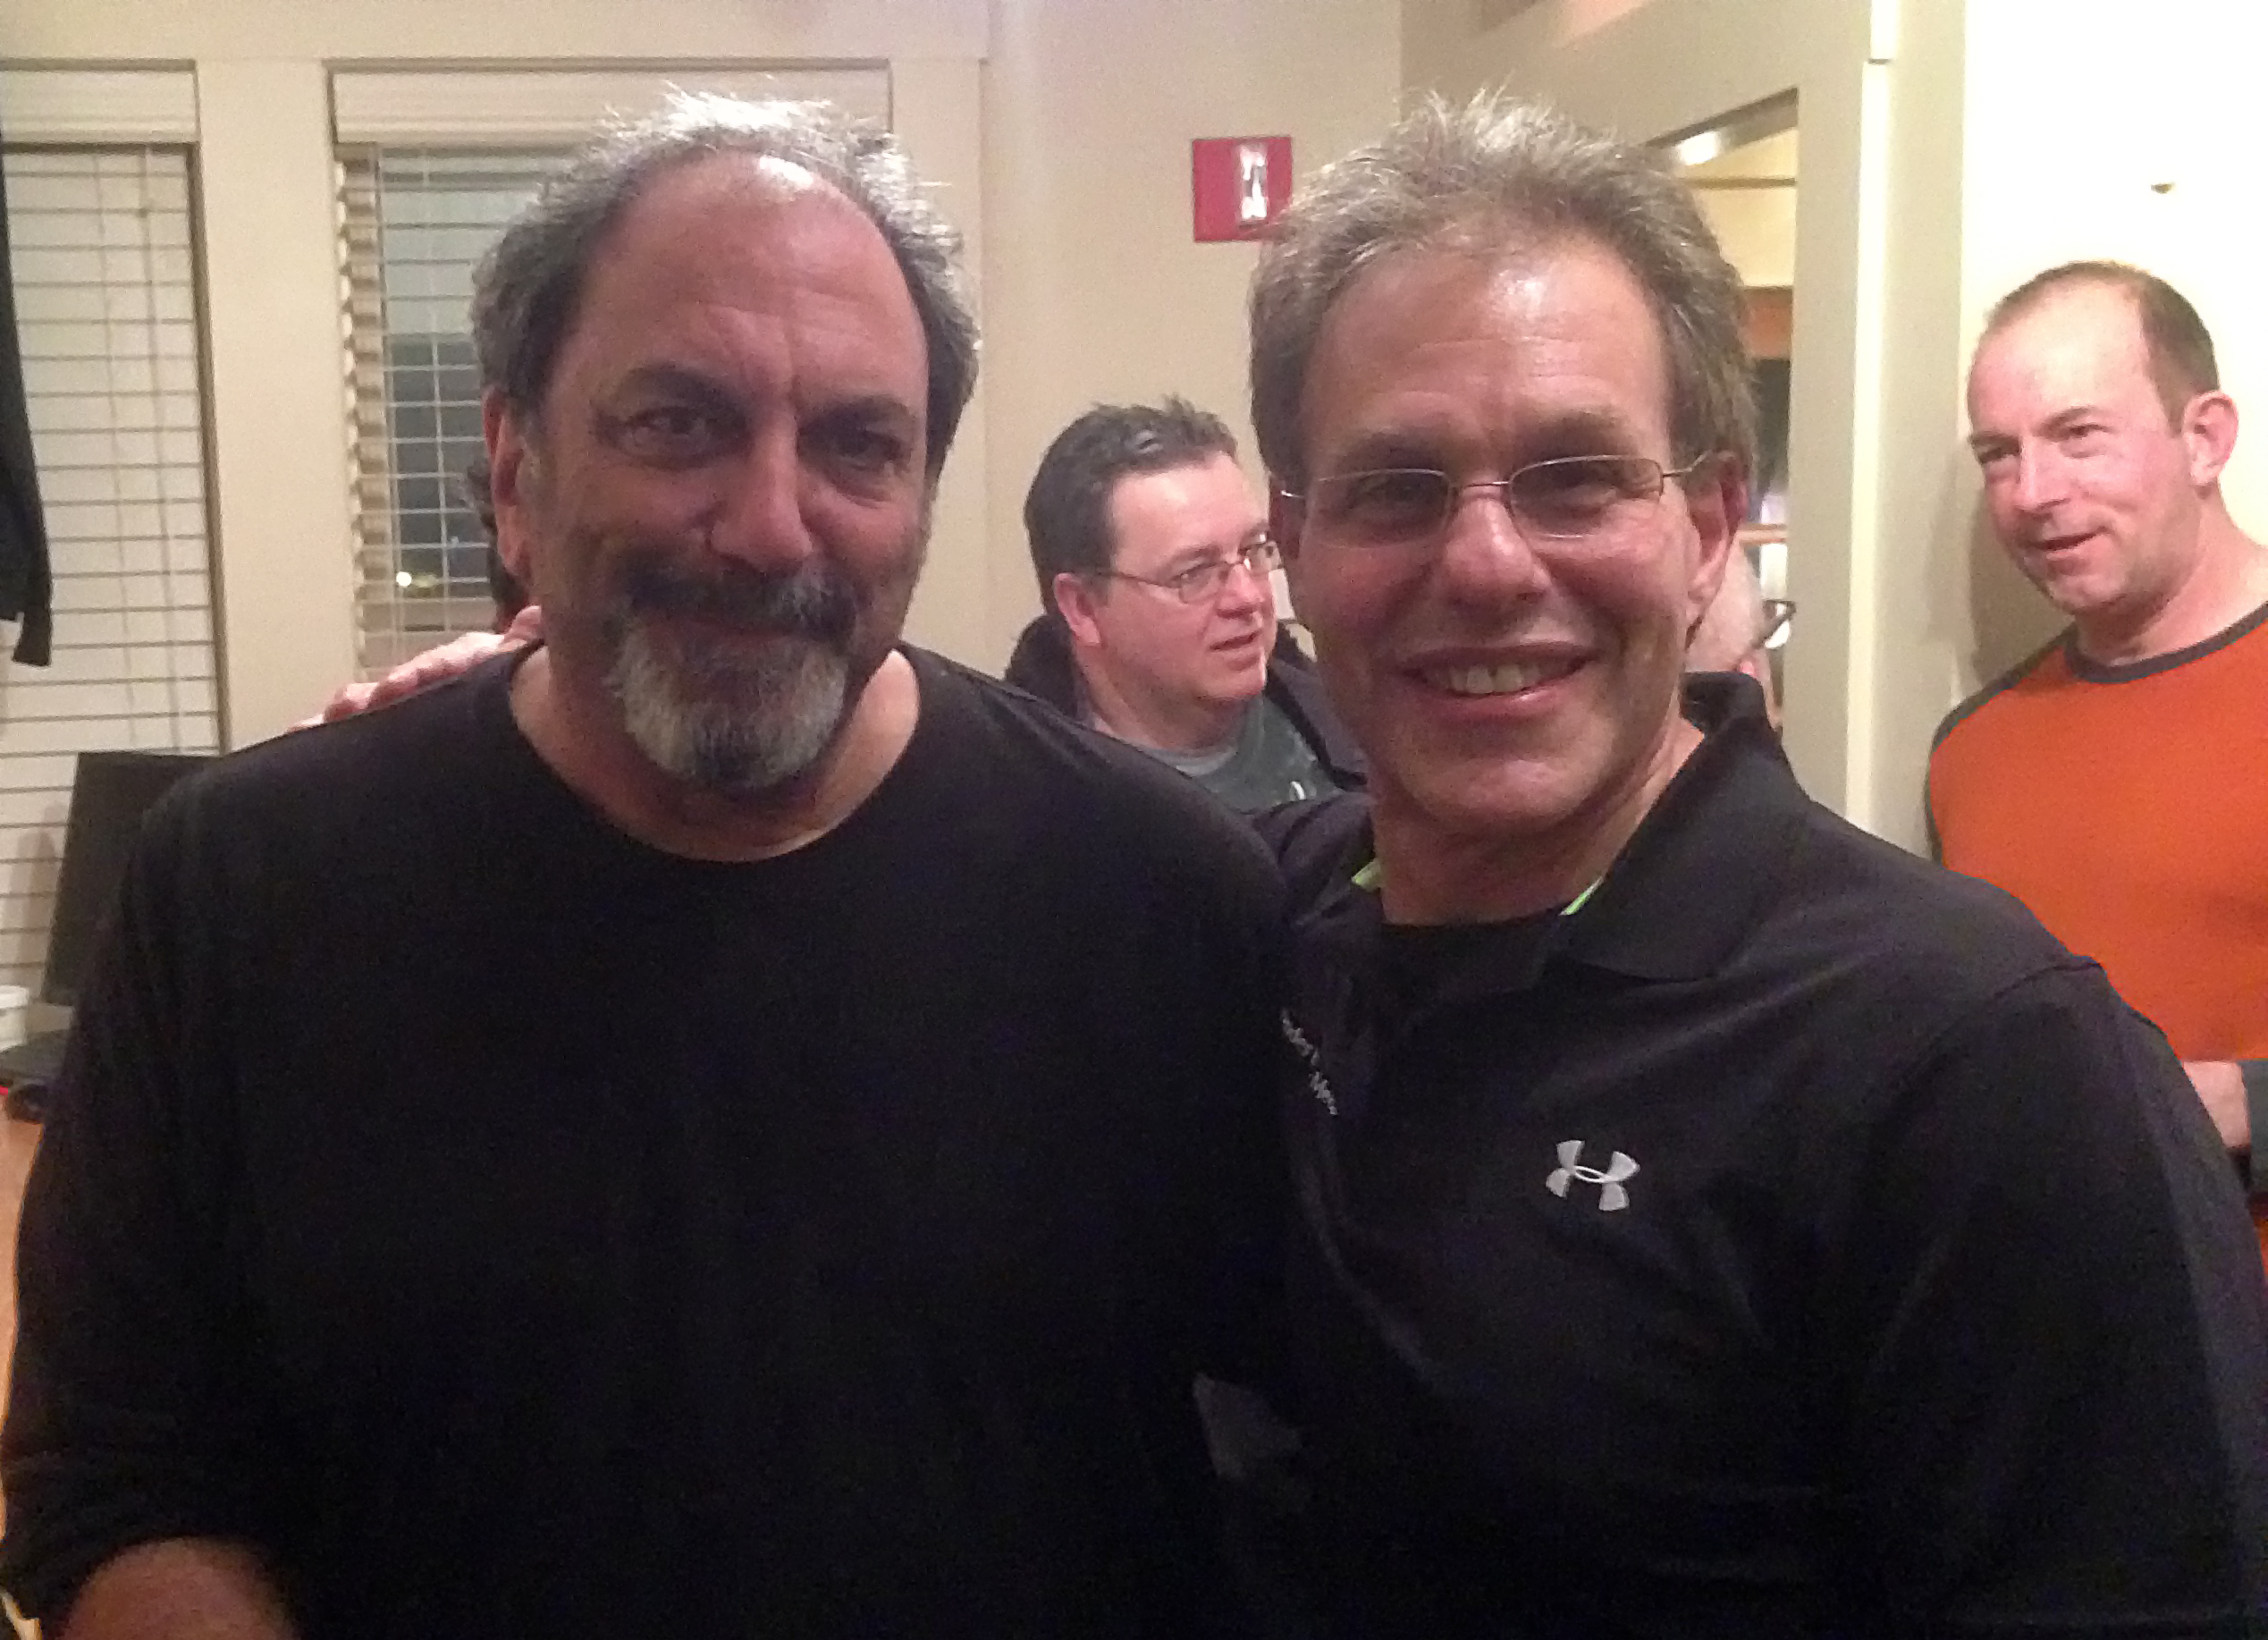 Elliot Gould of Render Edge Media with Jerry Marotta of the Security Project.